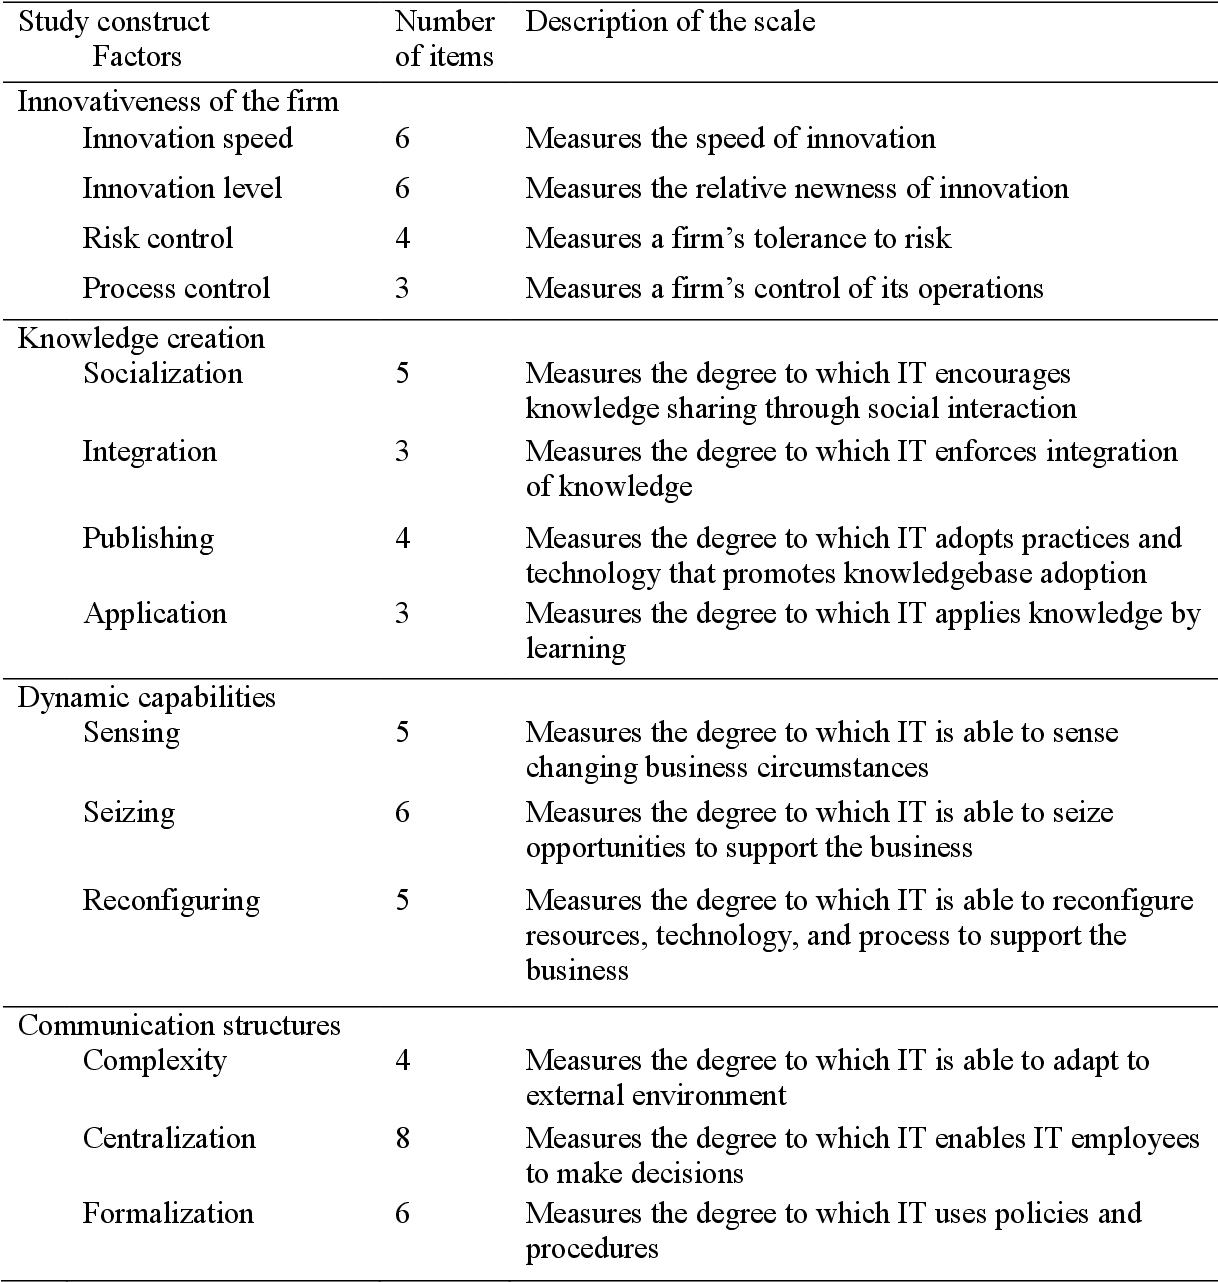 Pdf The Role Of Information Technology Organizational Design In Firms Ability To Innovate Semantic Scholar